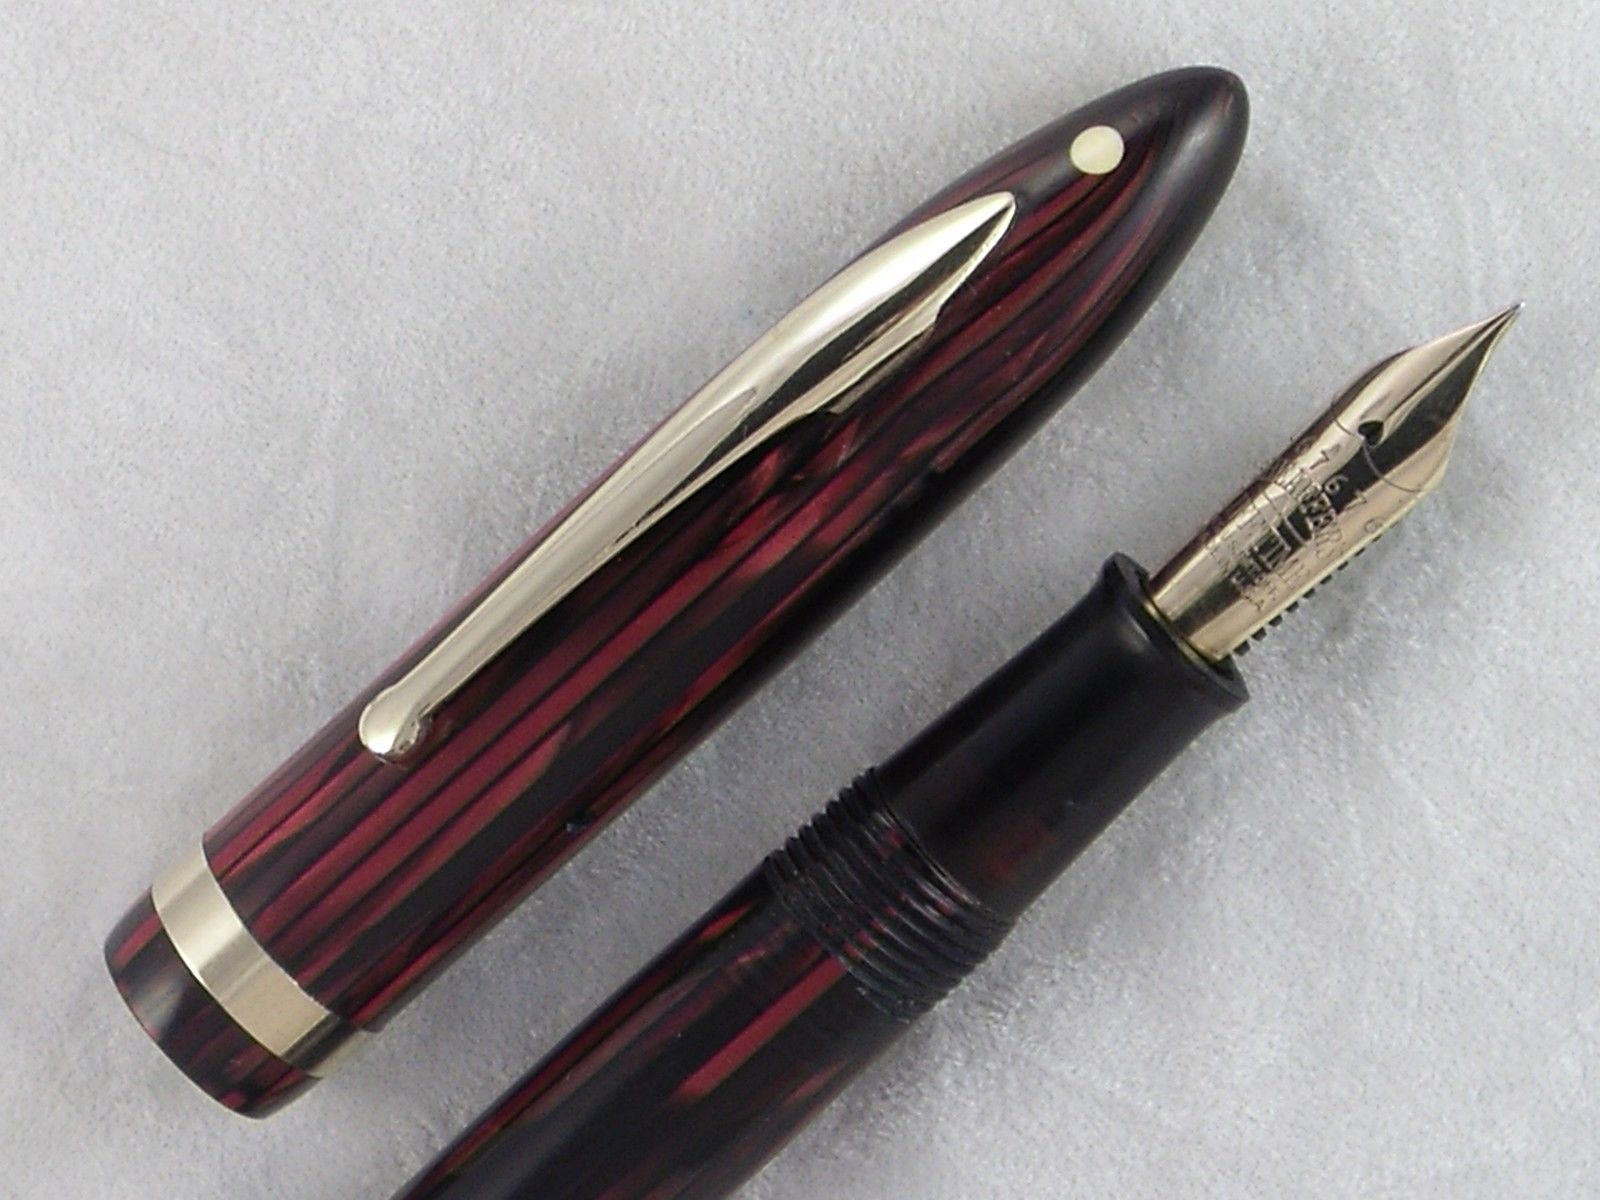 Vintage 1930s #Sheaffer Red Striped Lifetime Balance Fountain Pen Restored  | eBay